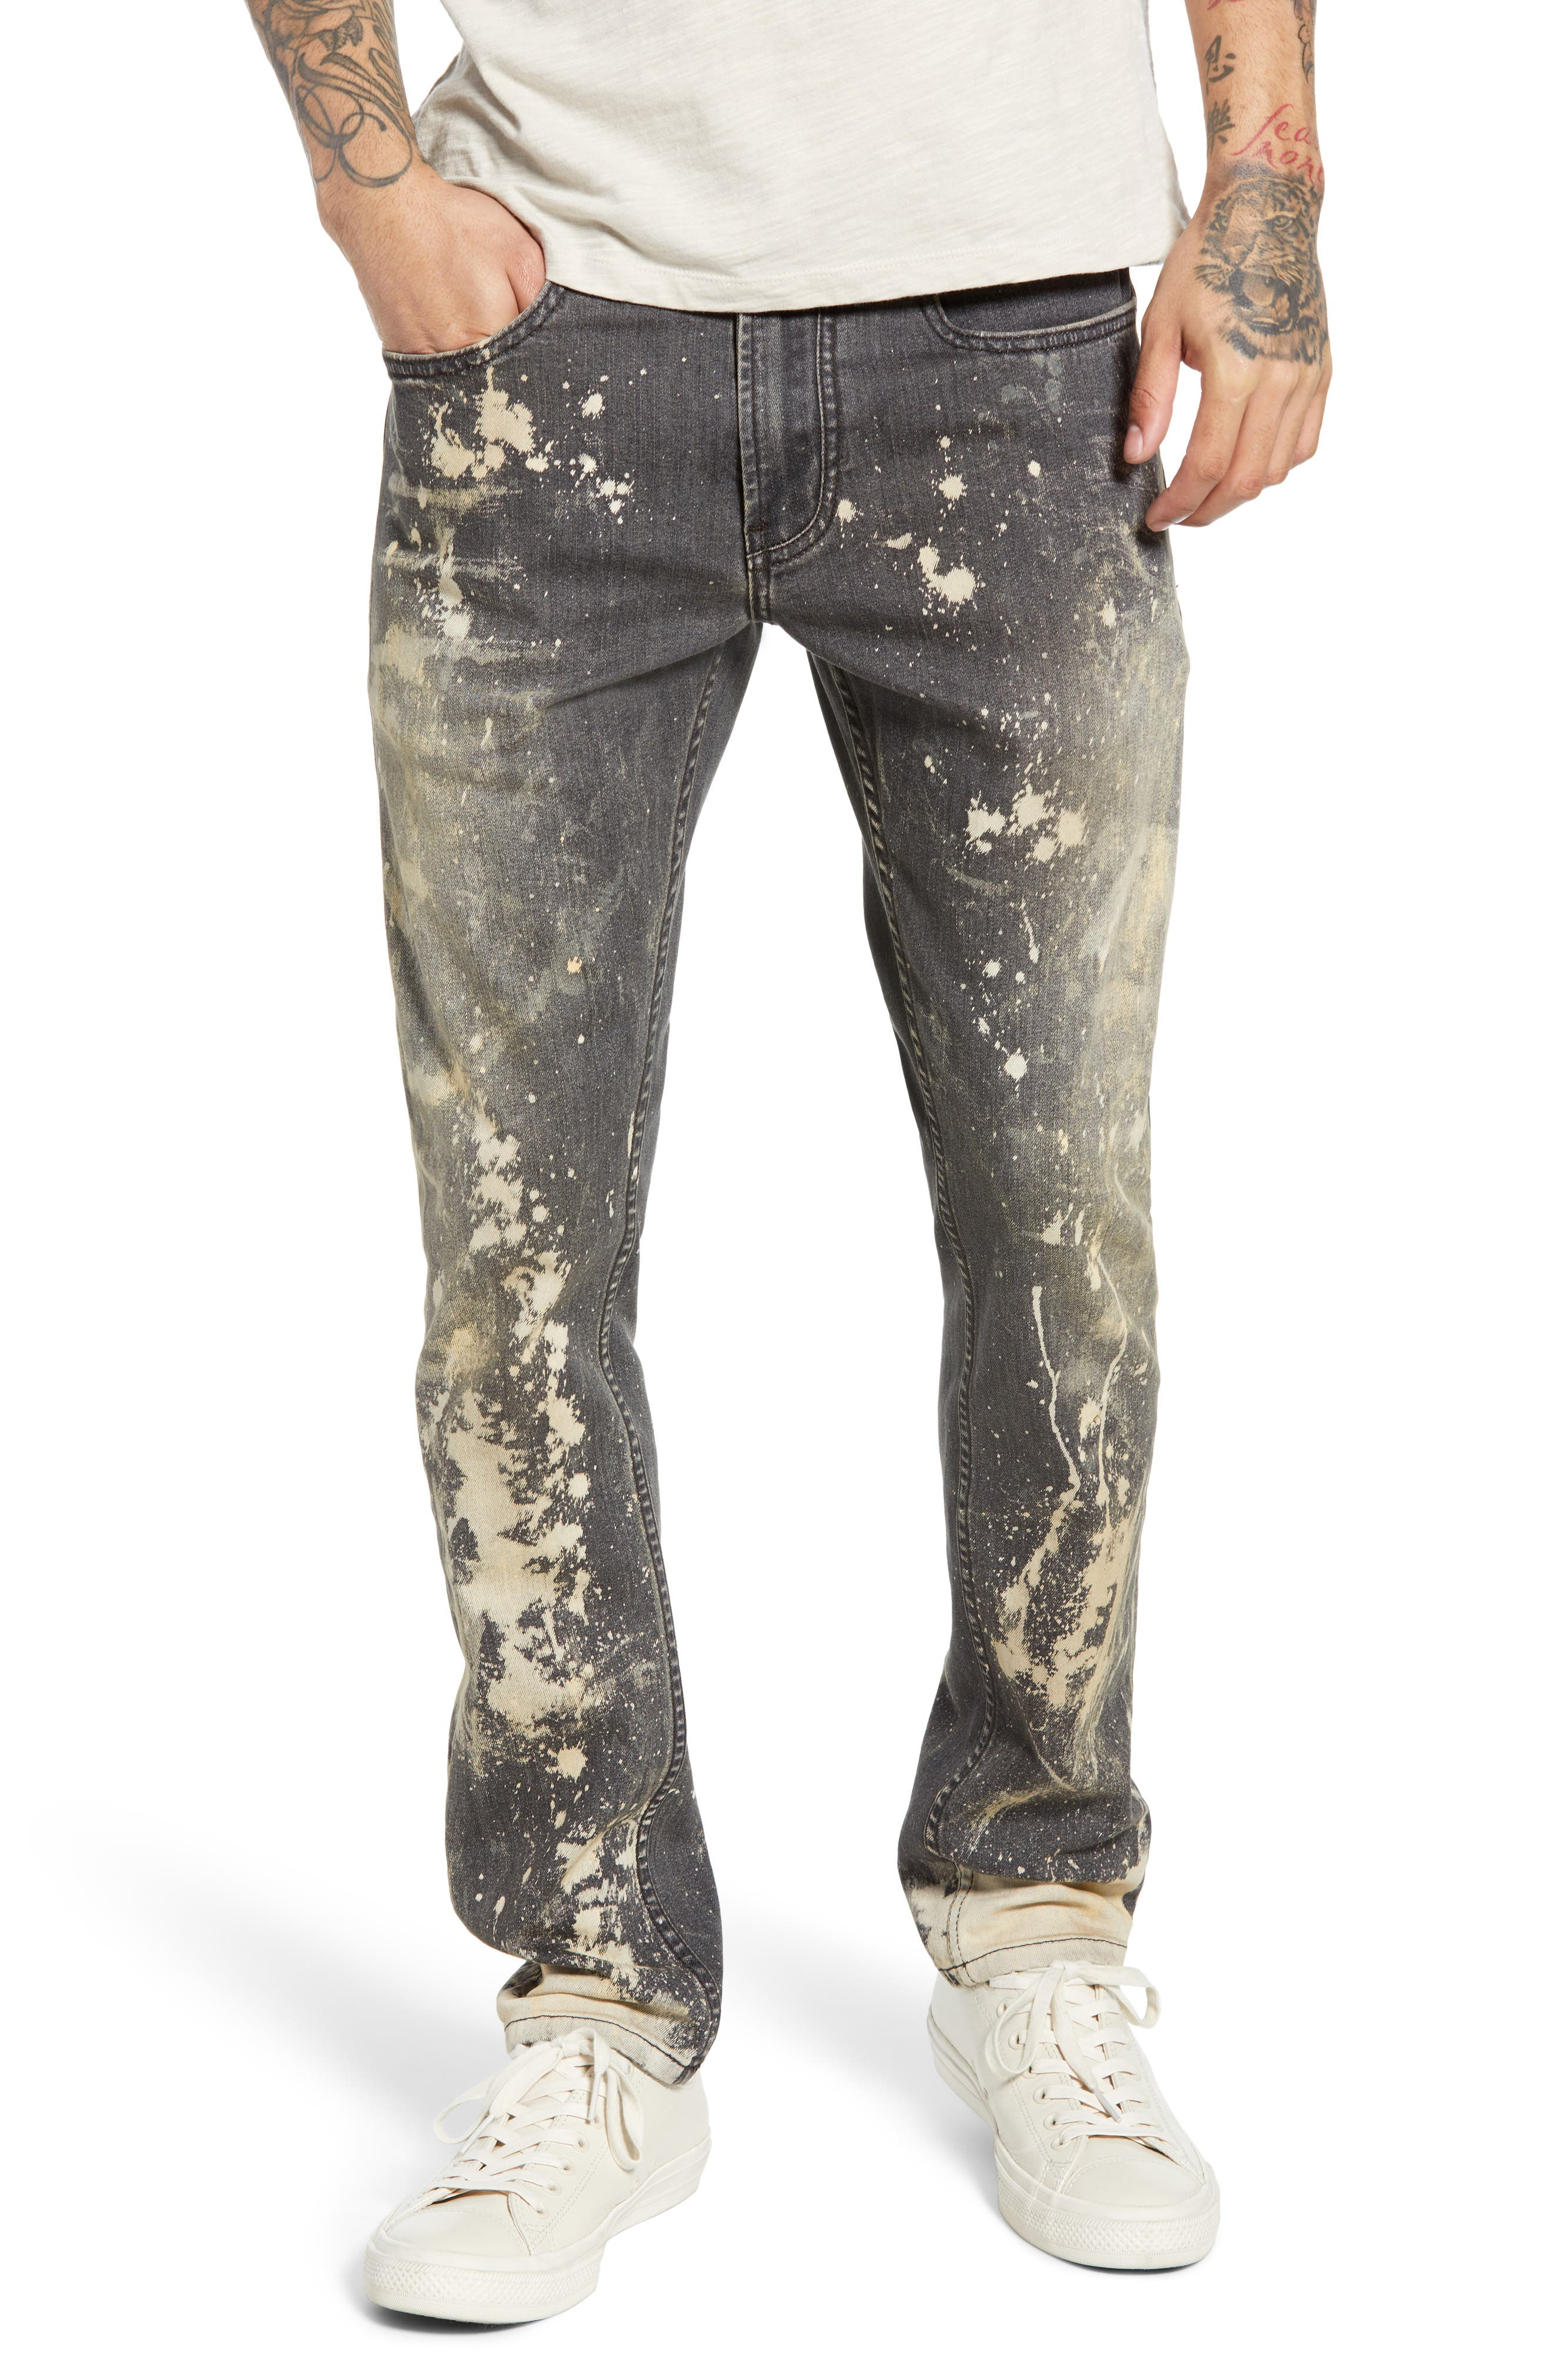 BLANKNYC, Horatio Skinny Fit Jeans, Main thumbnail 1, color, GOOD TIMES BAD TIMES